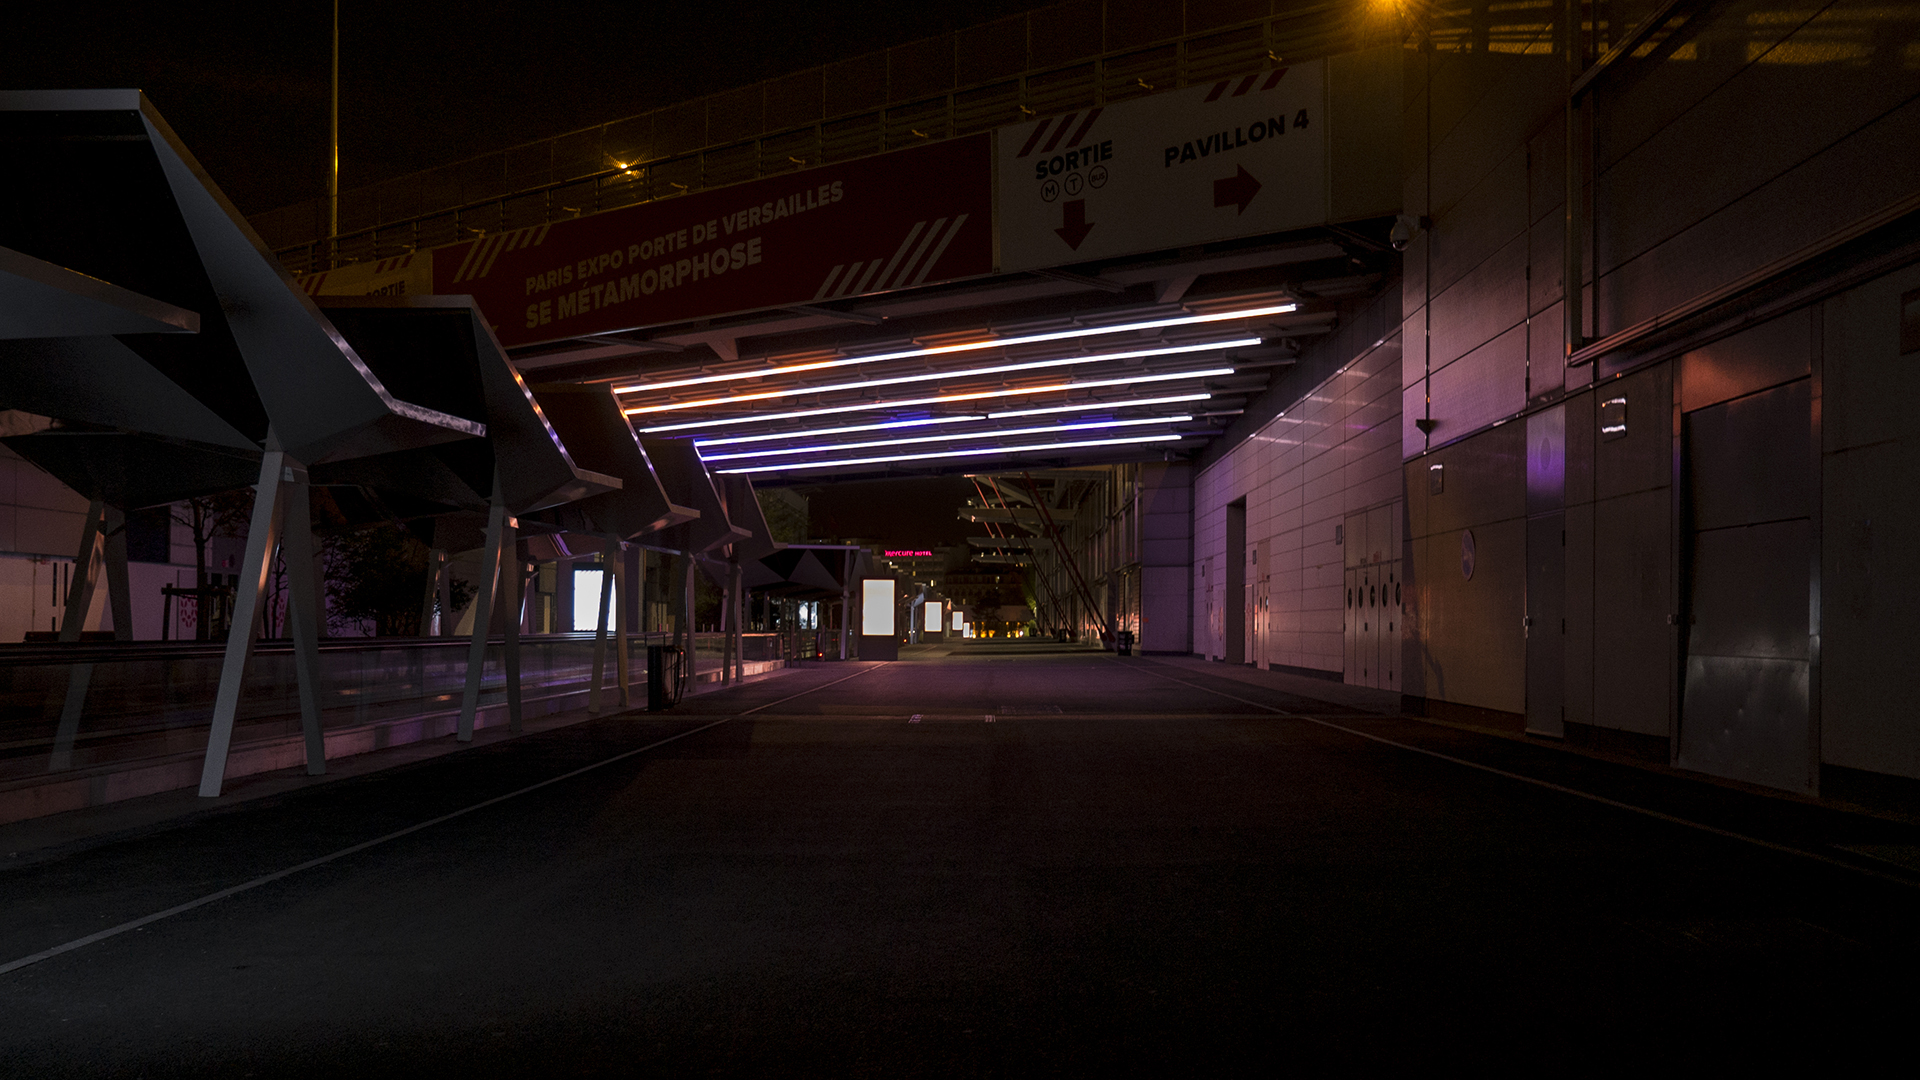 Lighting Installation that reacts to traffic